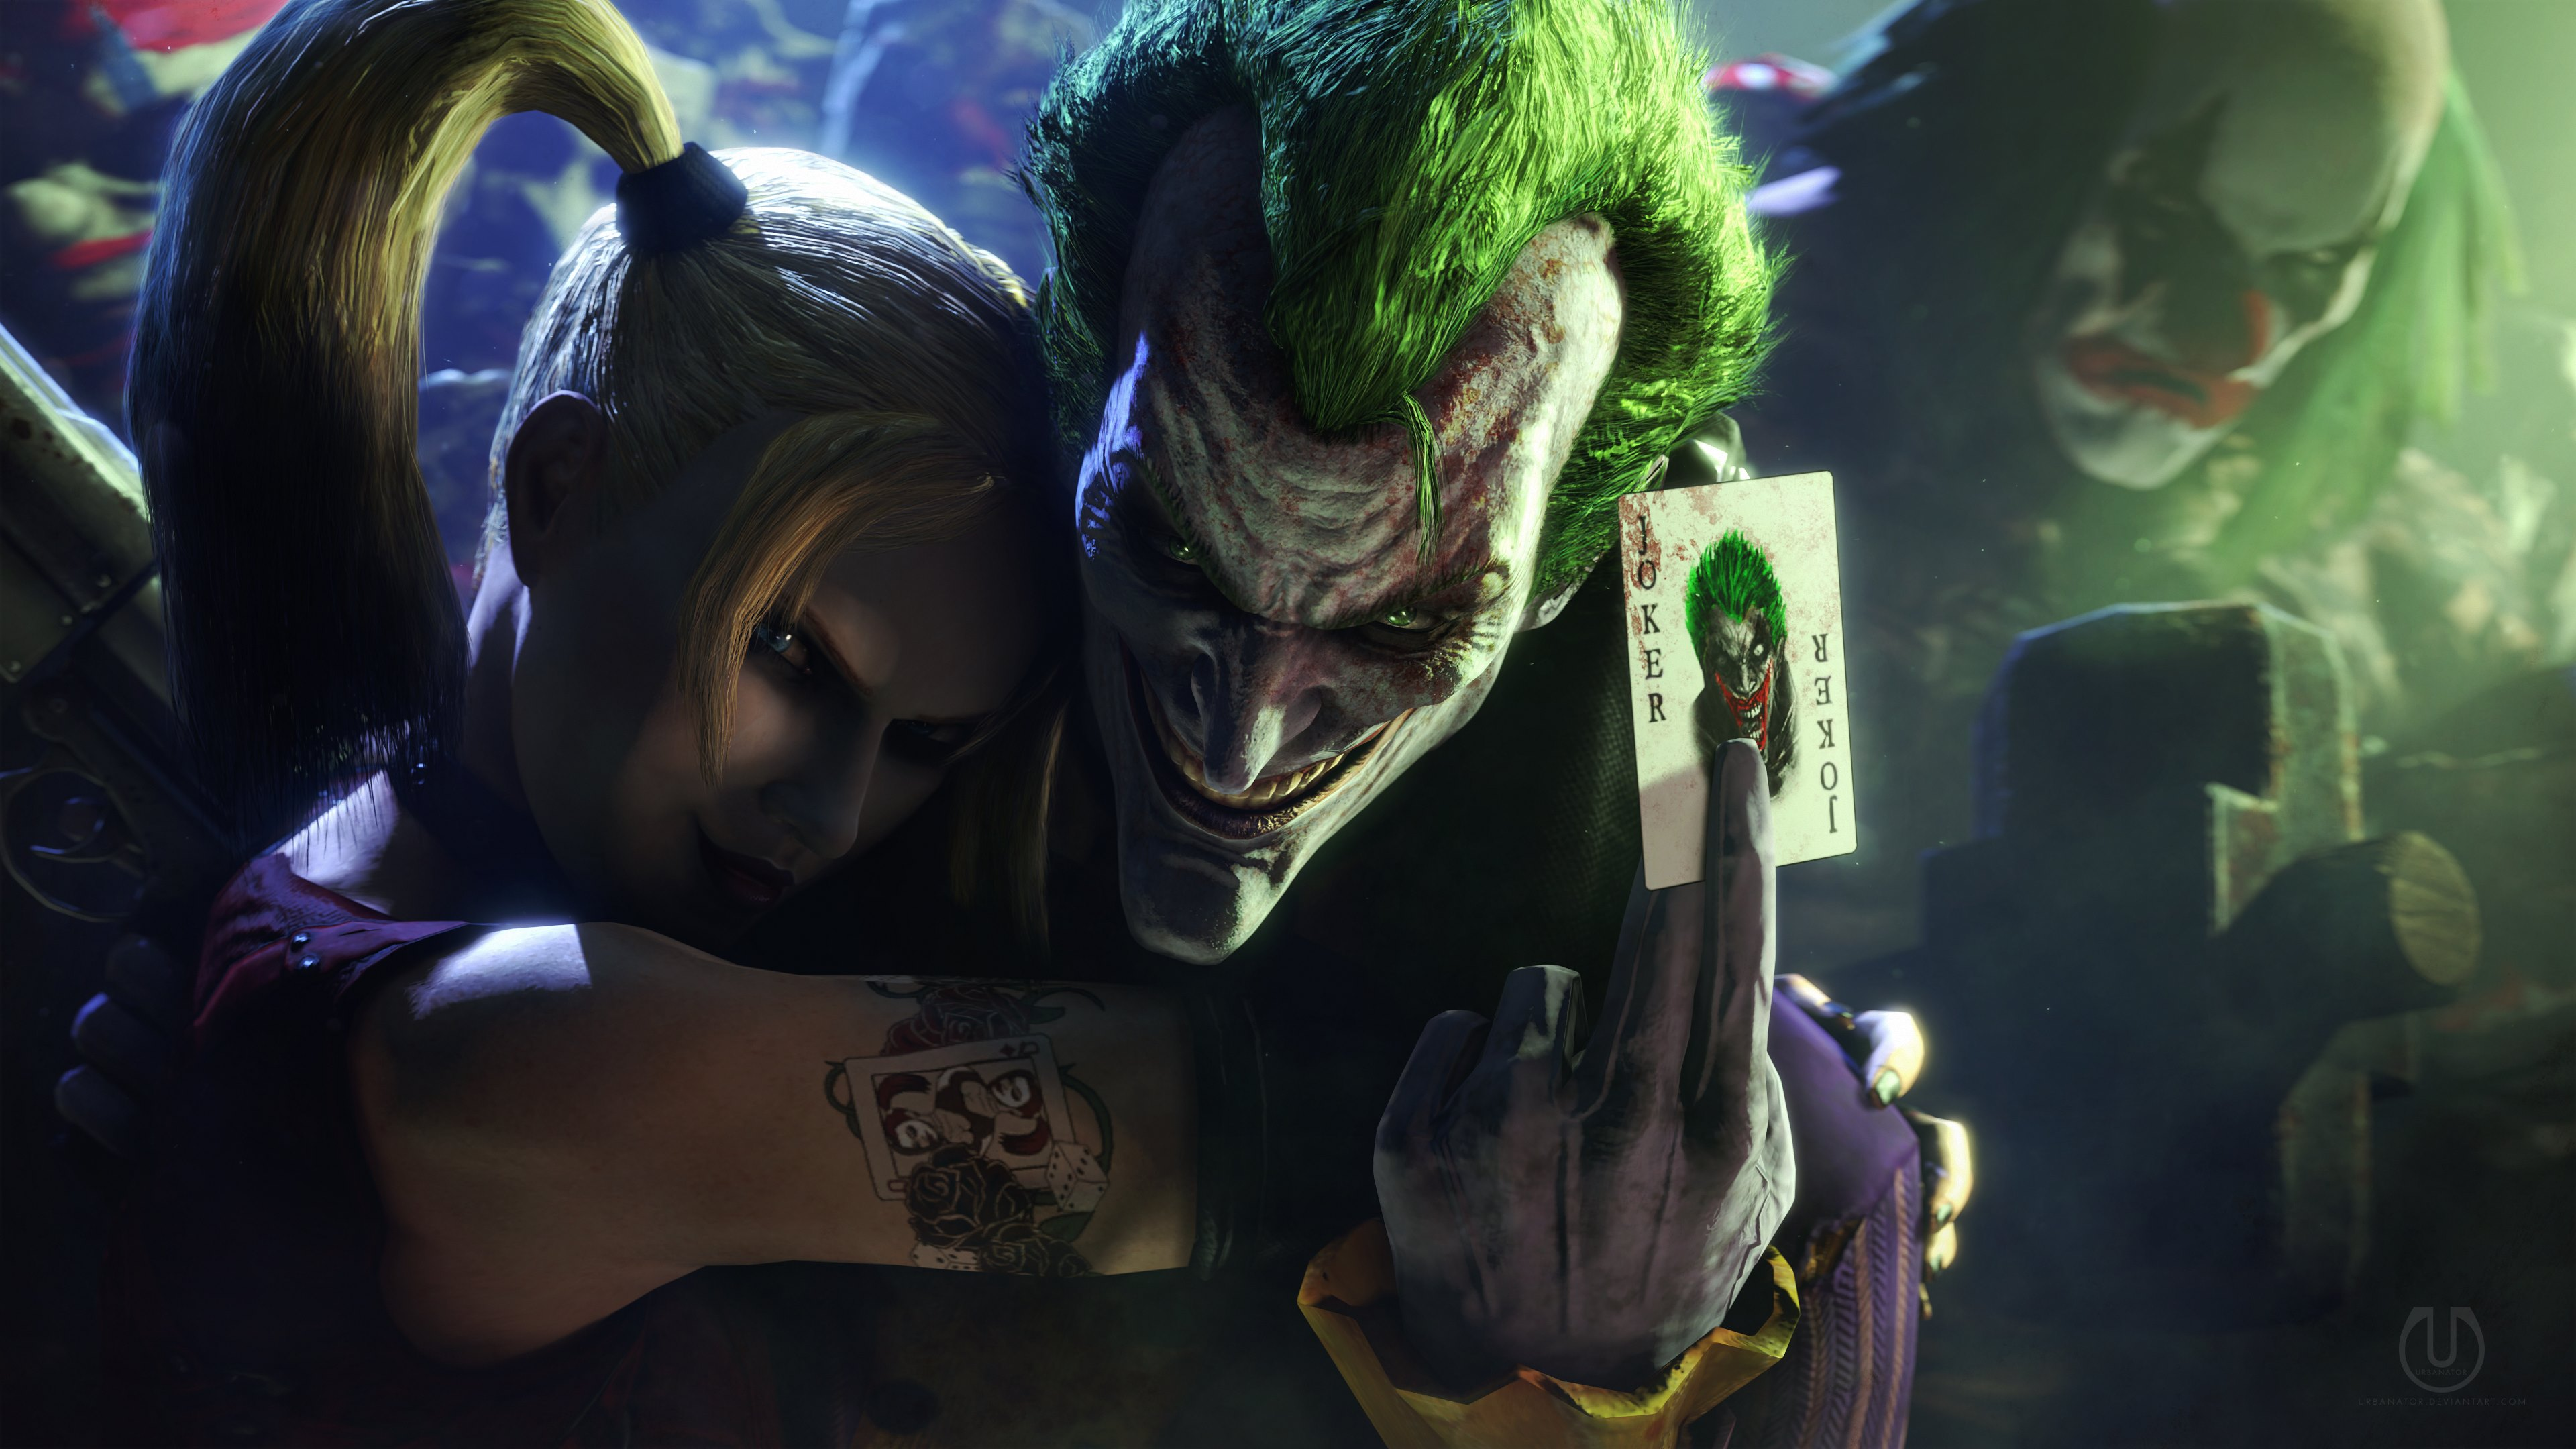 Joker and Harley Quinn Wallpapers HD Wallpapers 3840x2160